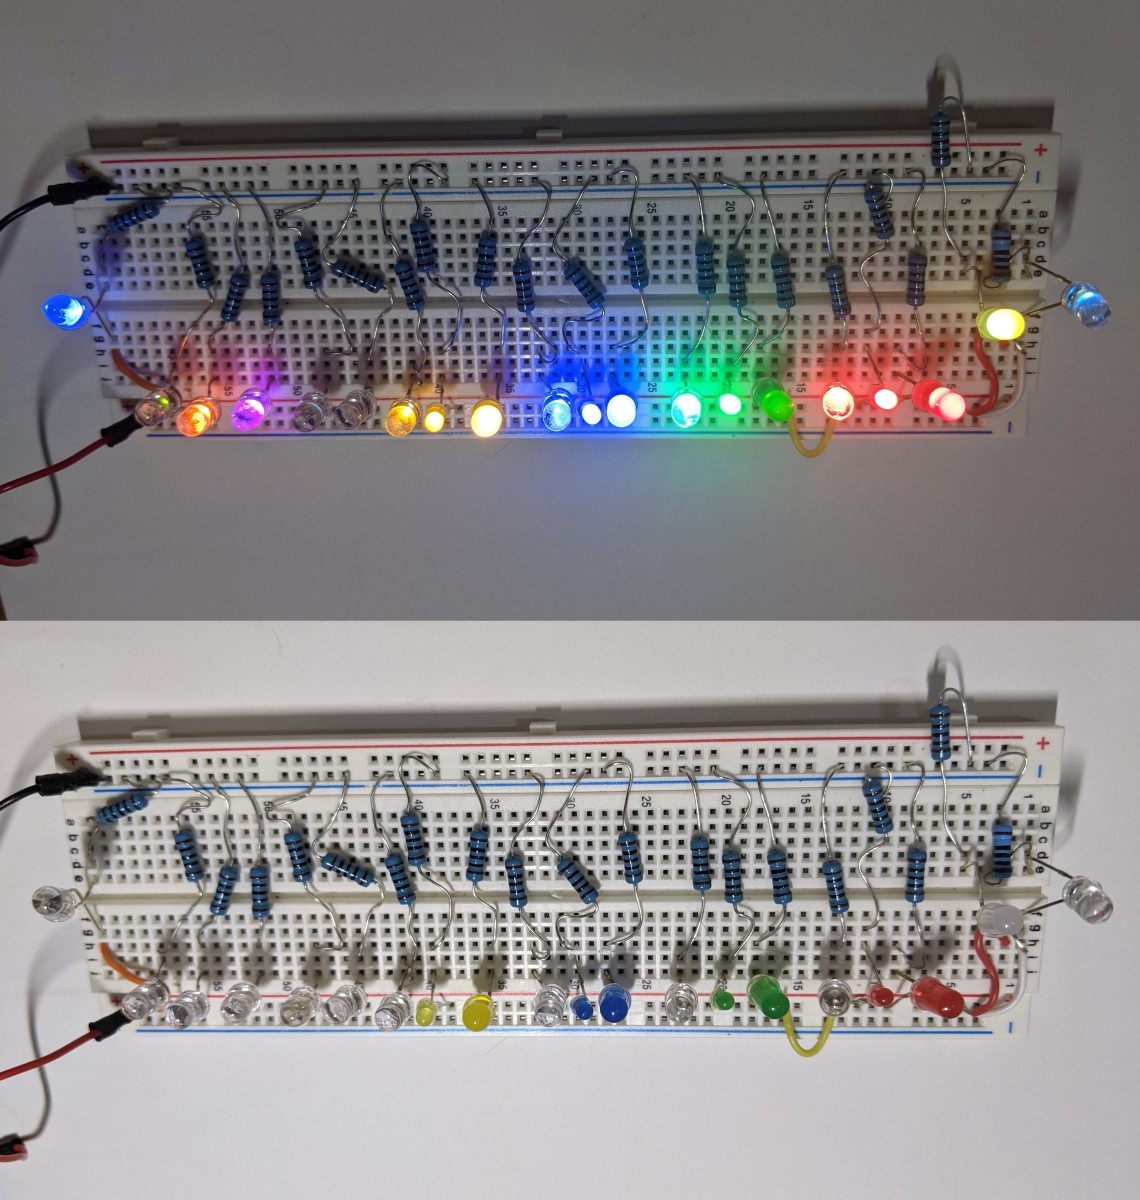 This photo displays my collection of LEDs both while illuminated, and while powered off.